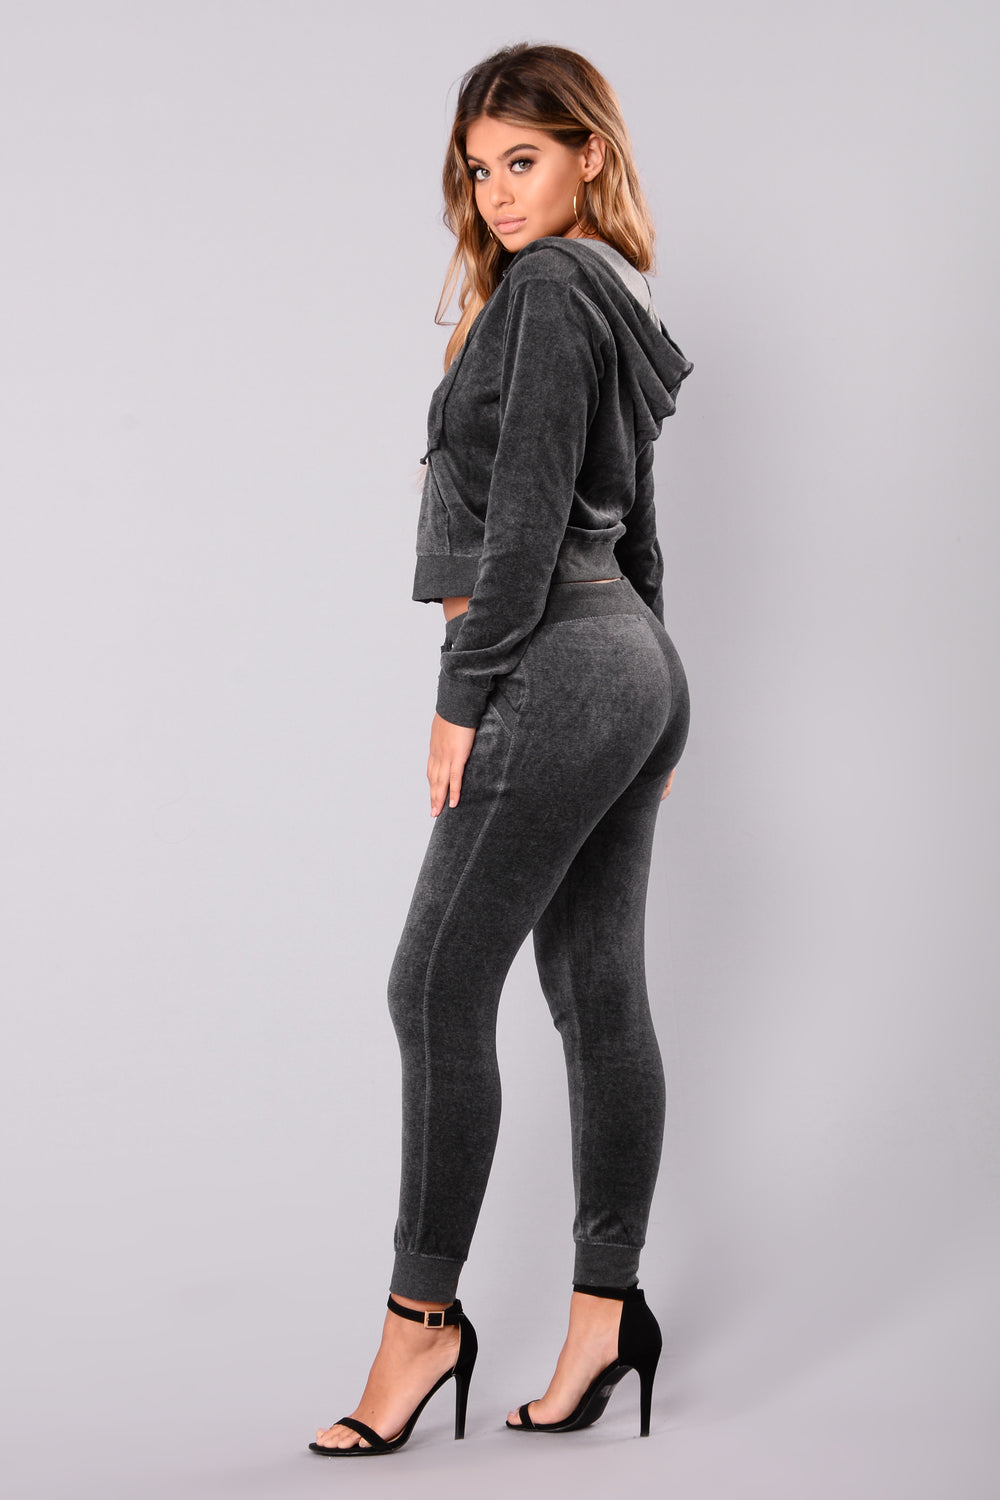 The Original Trendsetter Velour Pants - Charcoal